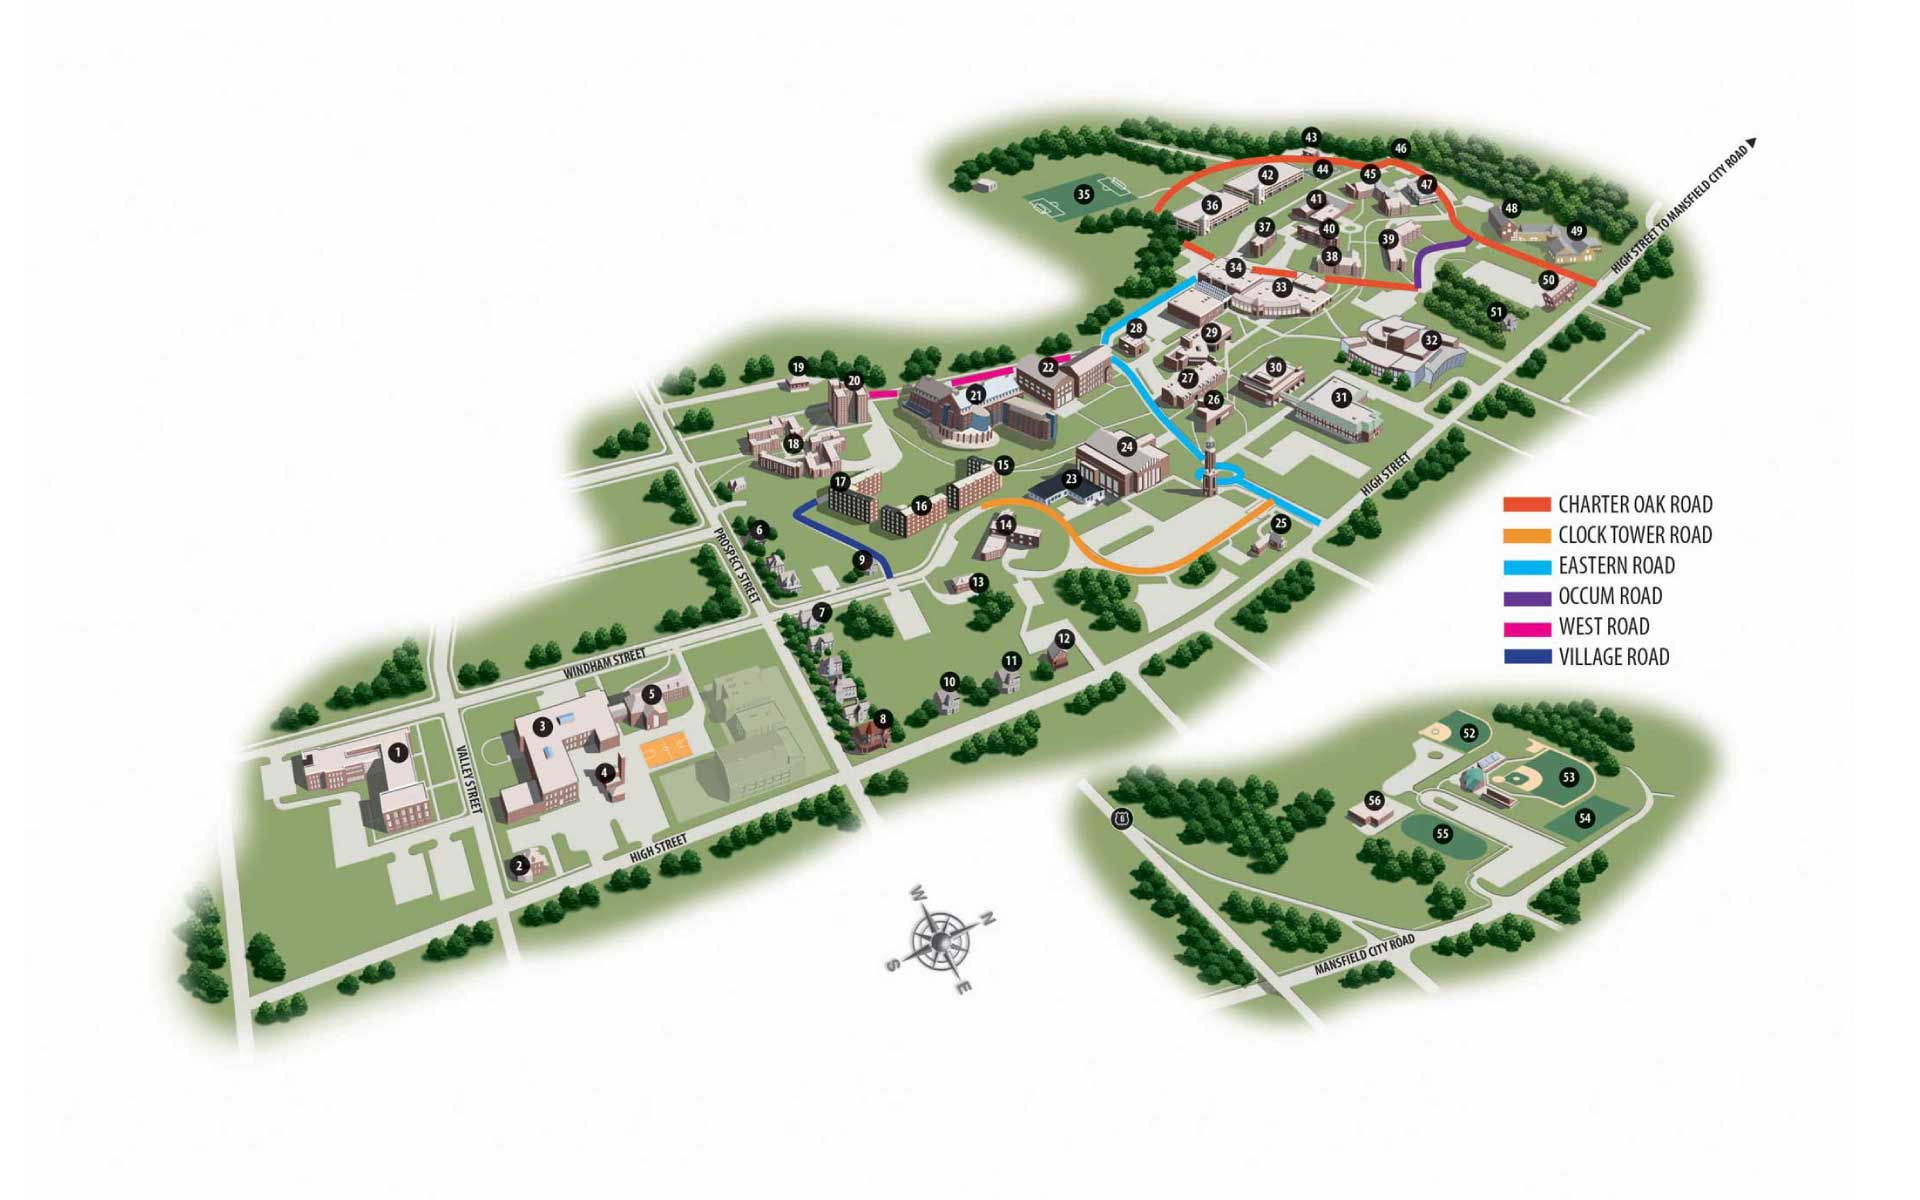 eastern connecticut state university map Campus Map Eastern eastern connecticut state university map